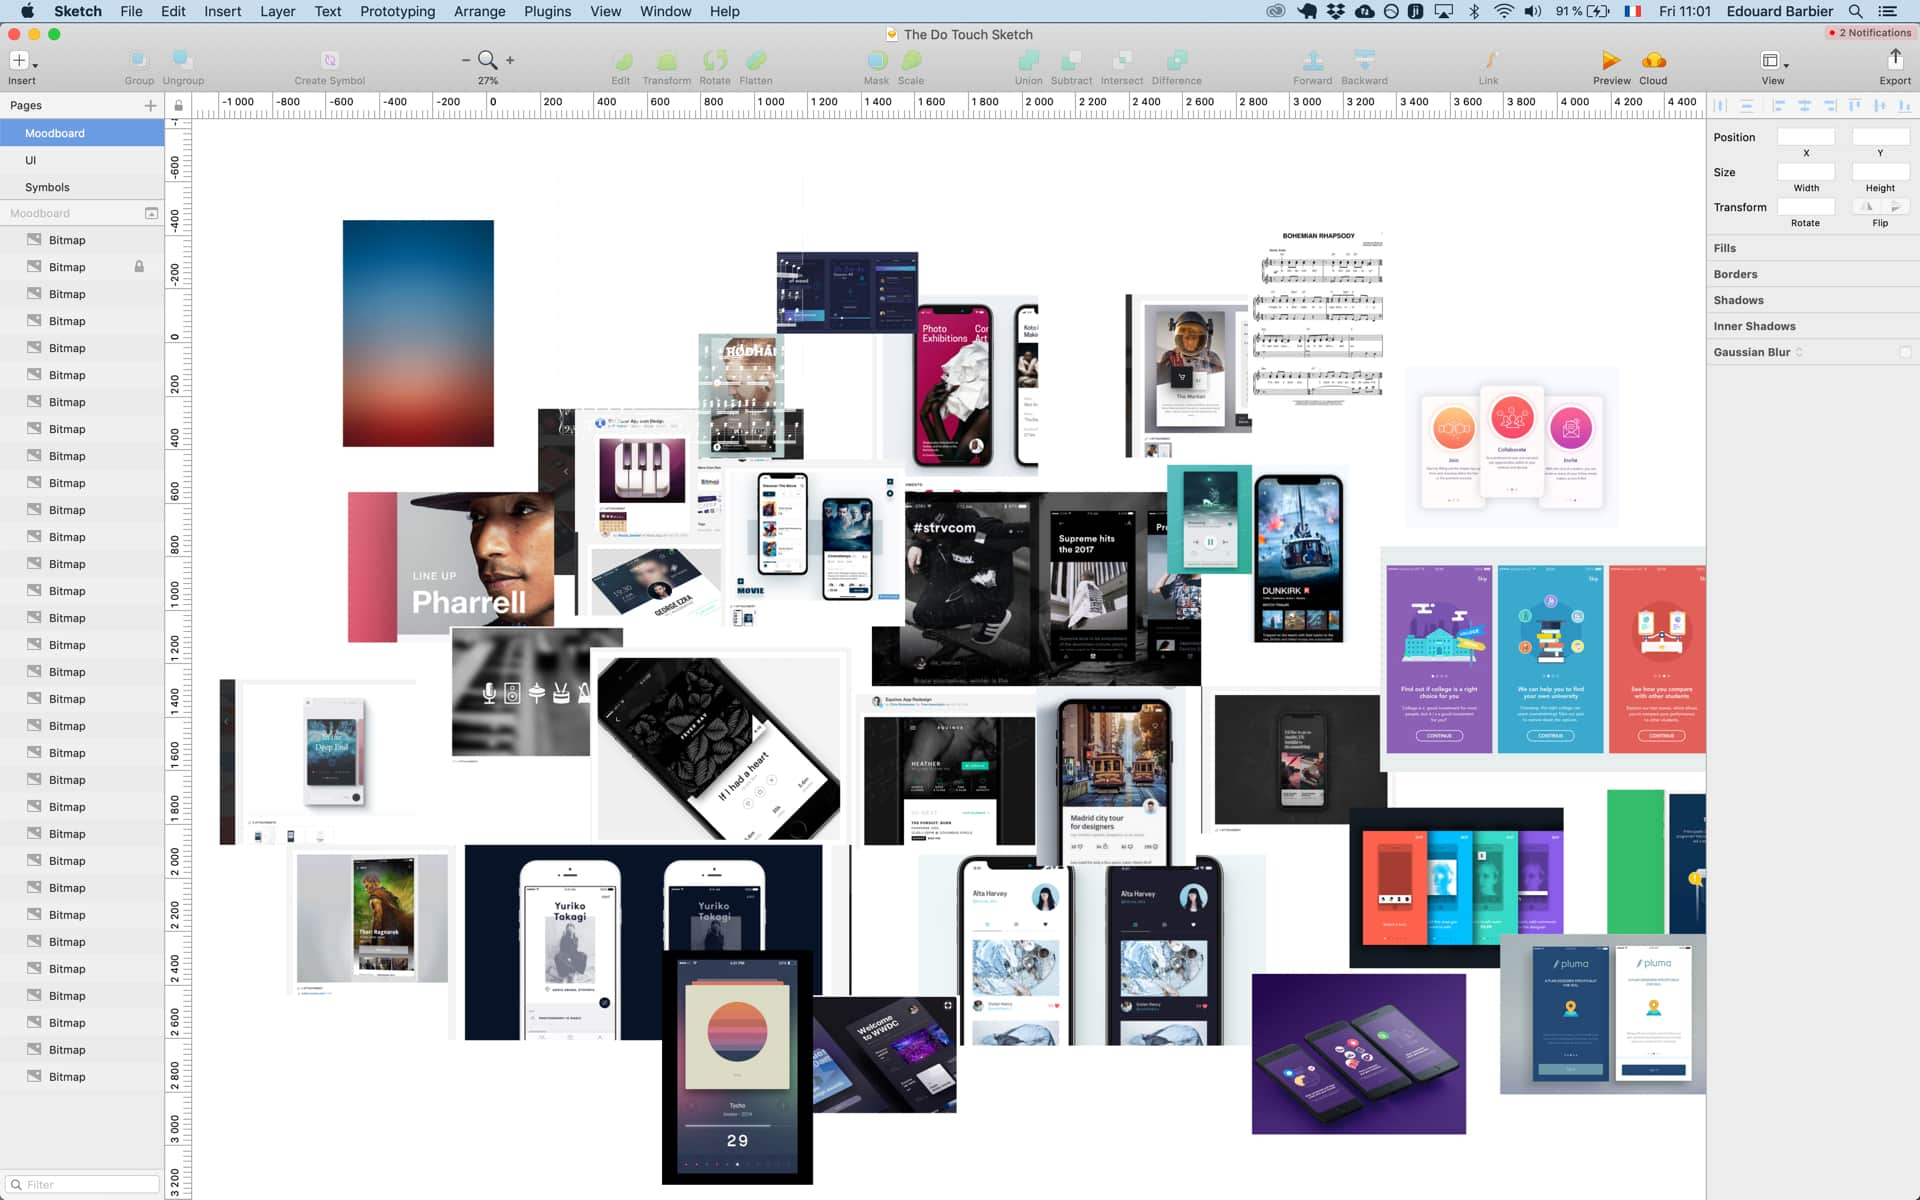 How to find inspiration when designing a new app from scratch? Create moodboards!